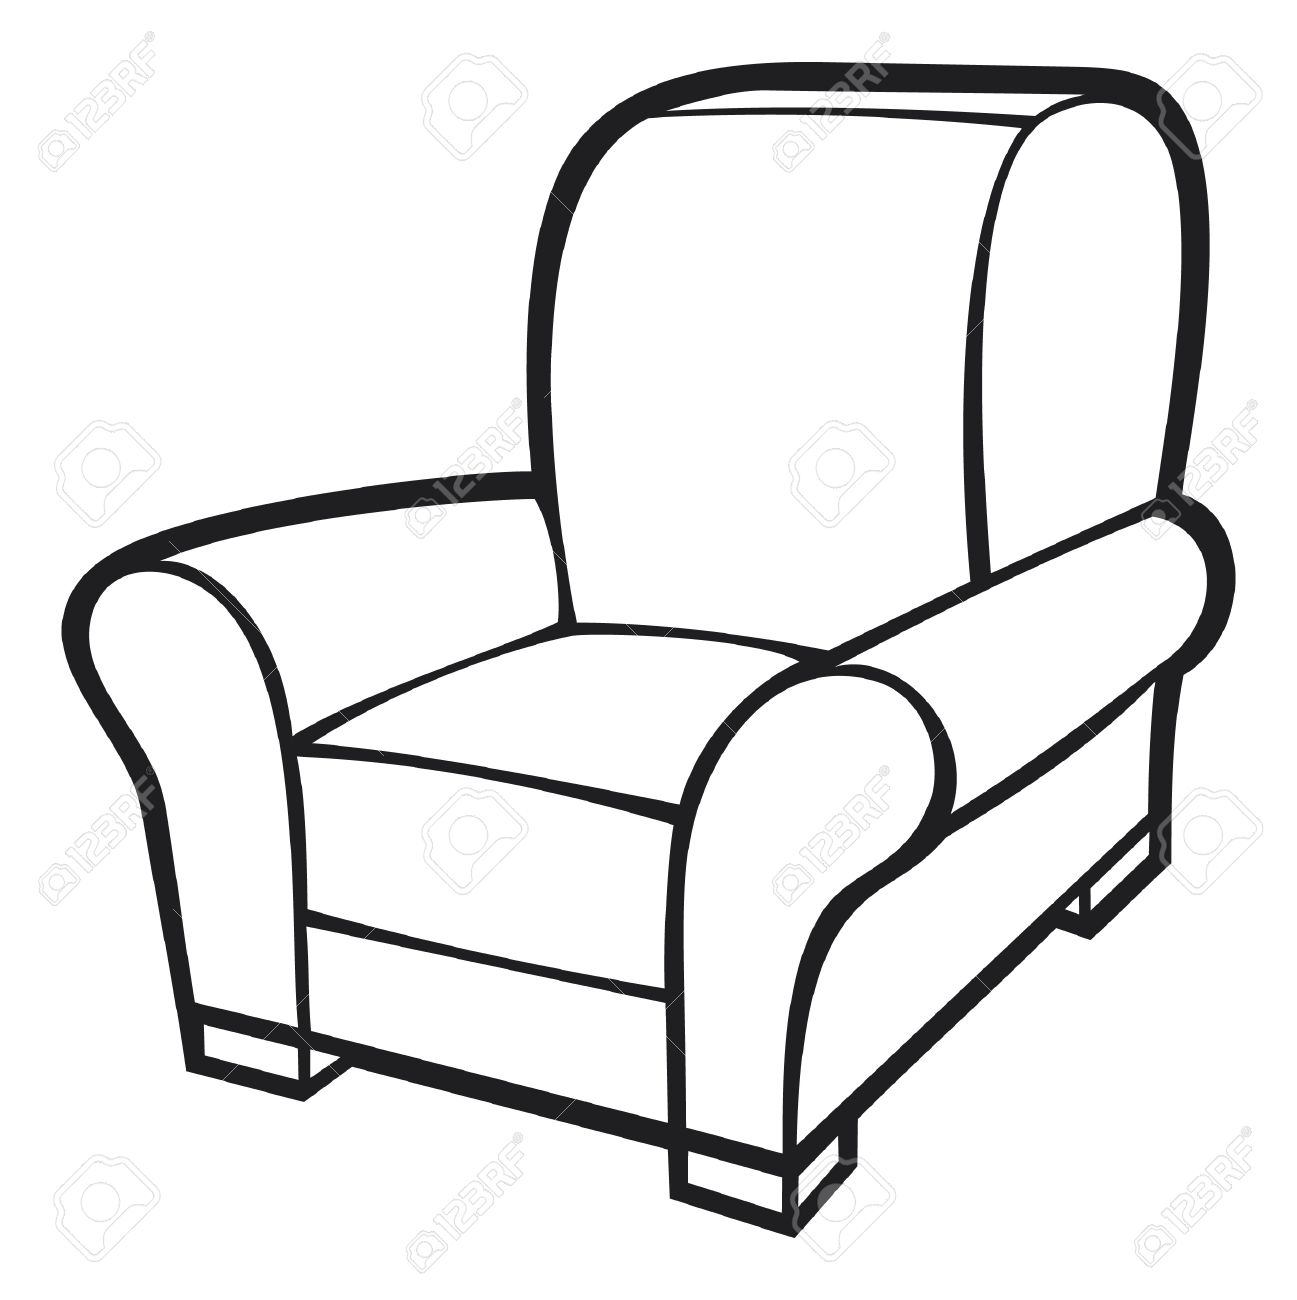 1297x1300 Furniture Clipart Black And White